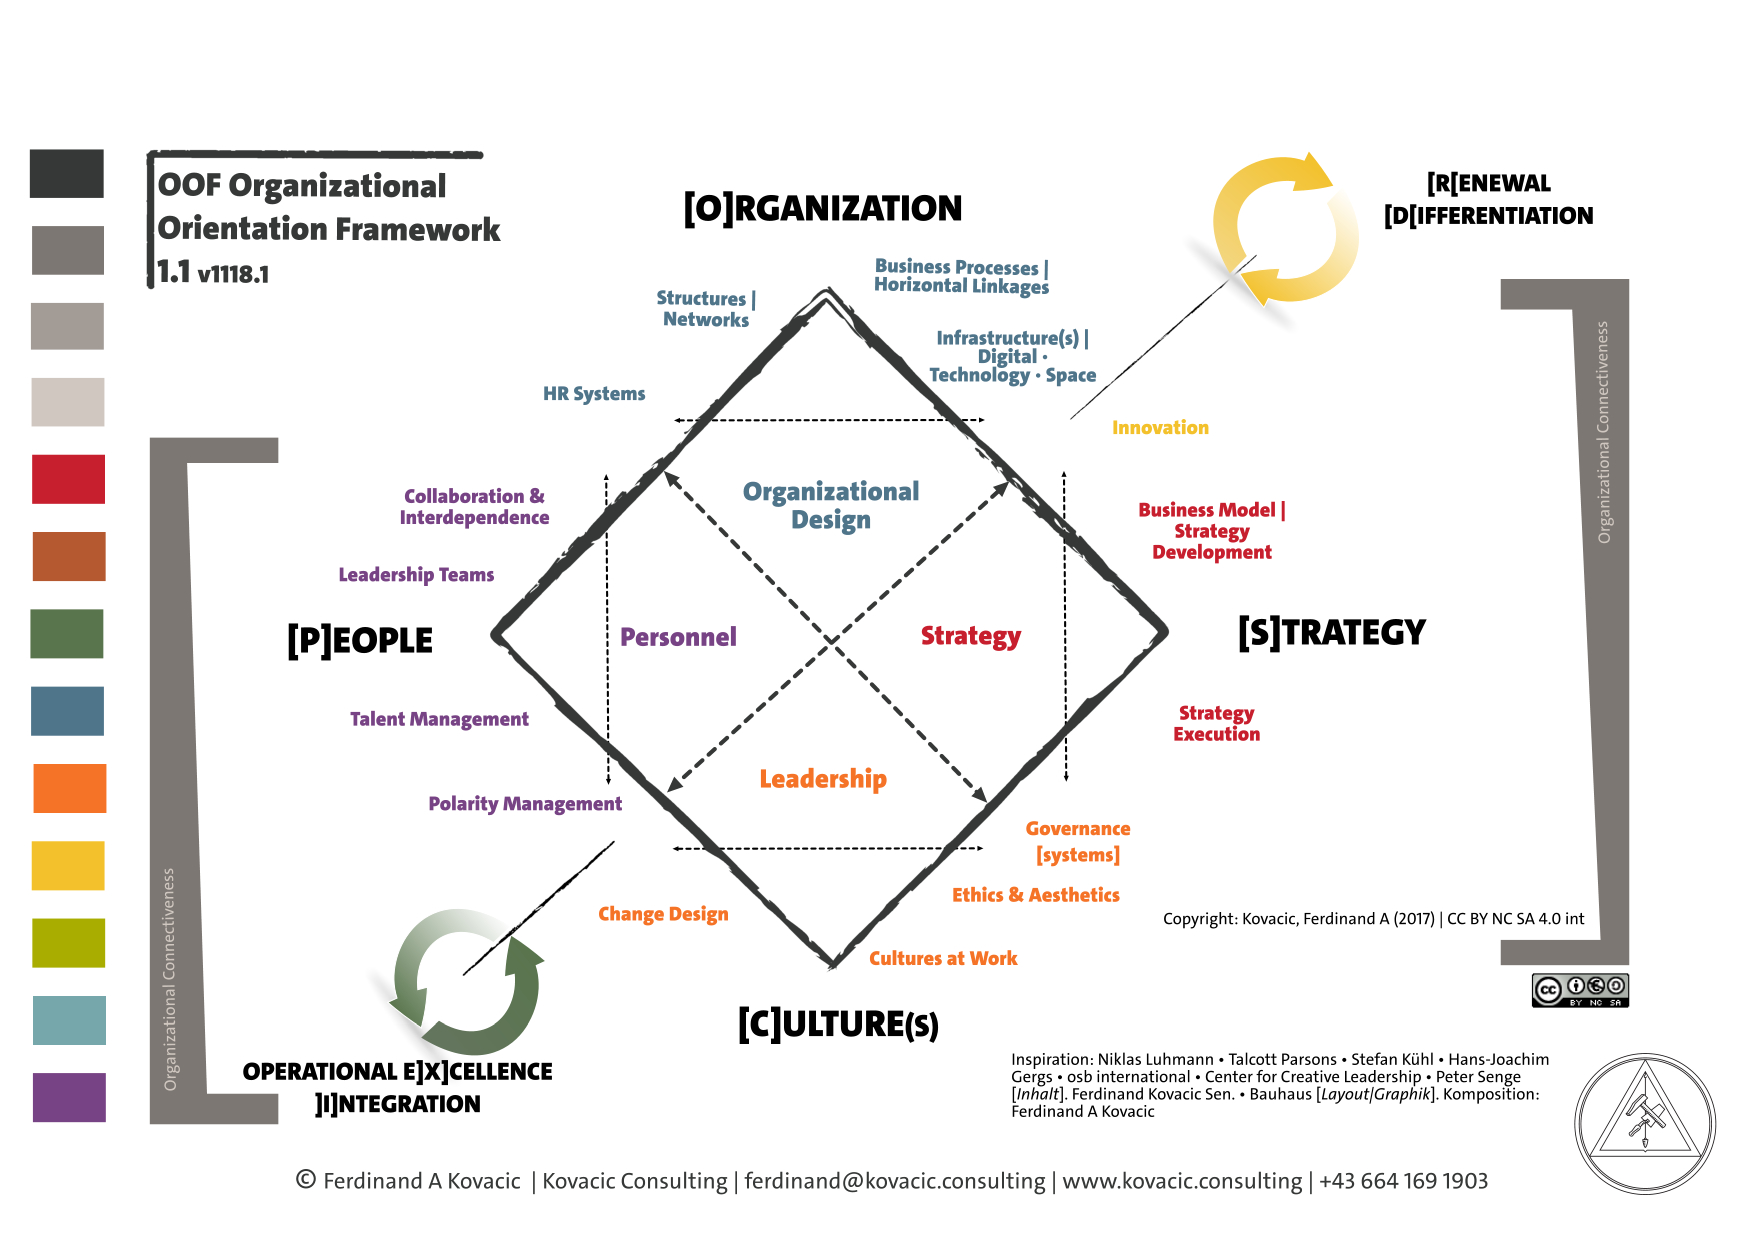 Organisational Orientation Framework. Strategy. Organisation. Culture. People. Innovation. Differentiation. Operational Excellence. Integration